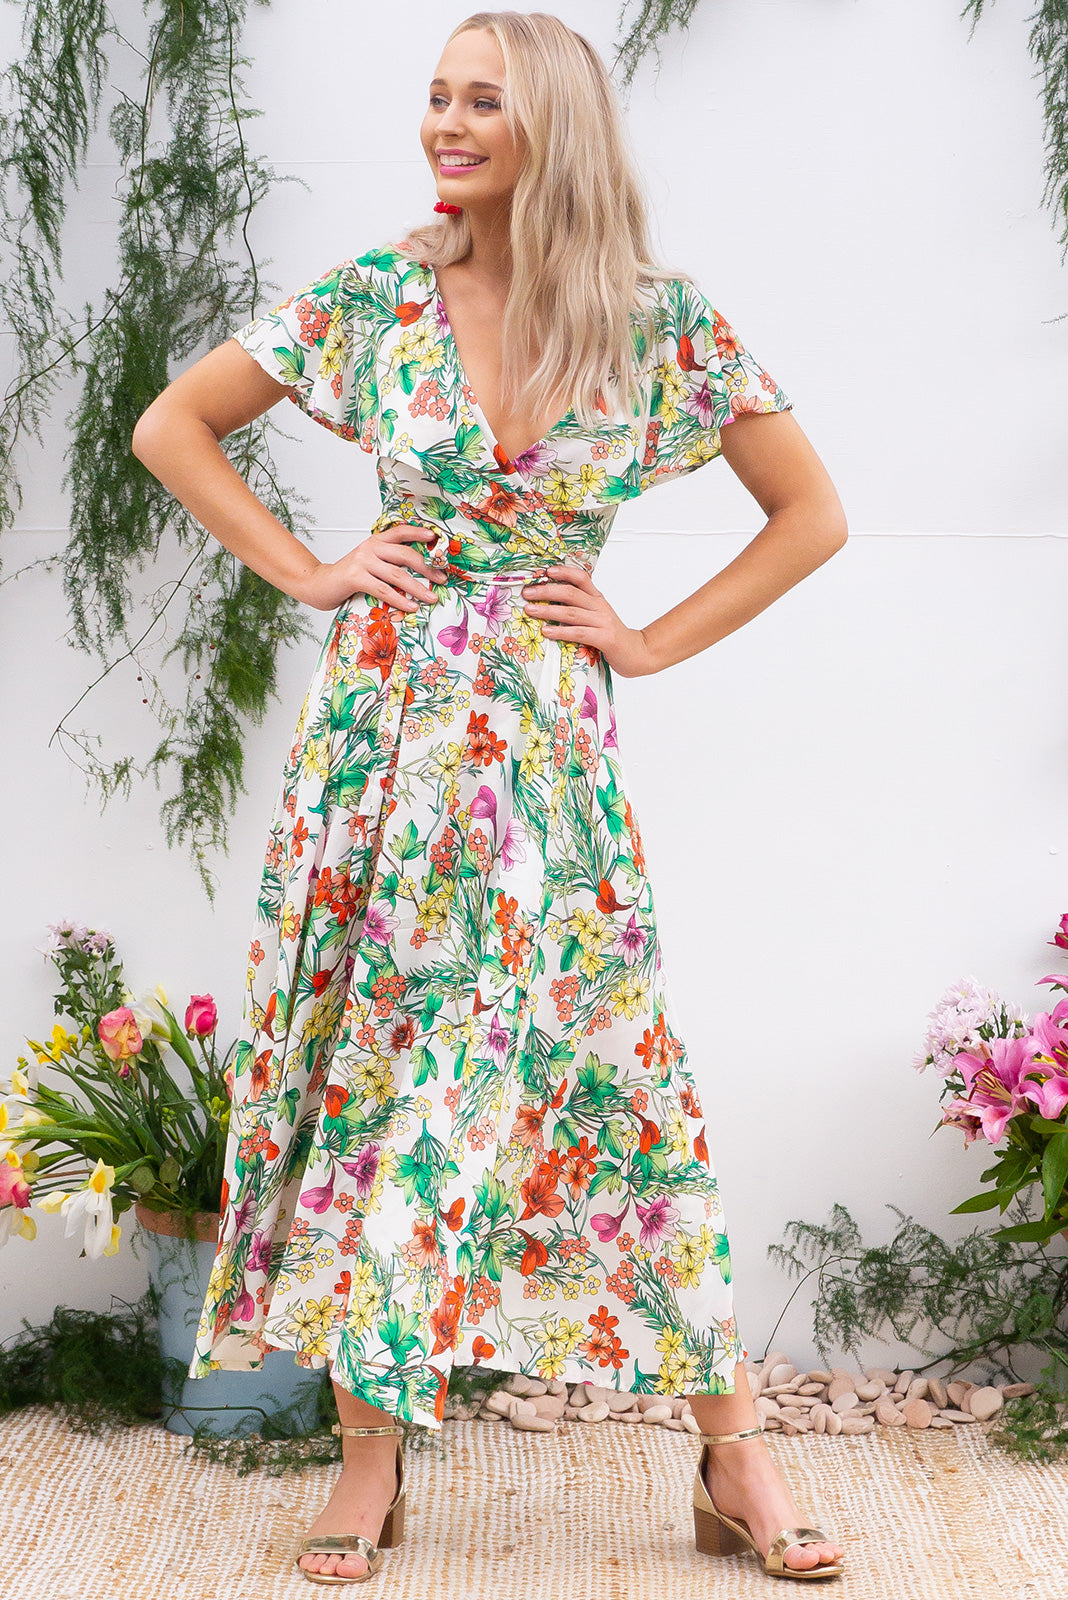 Rio Rita Herb Garden Maxi vintage inspired Wrap Dress with a full frill around the neck and sleeve in a soft cream floral and print on rayon